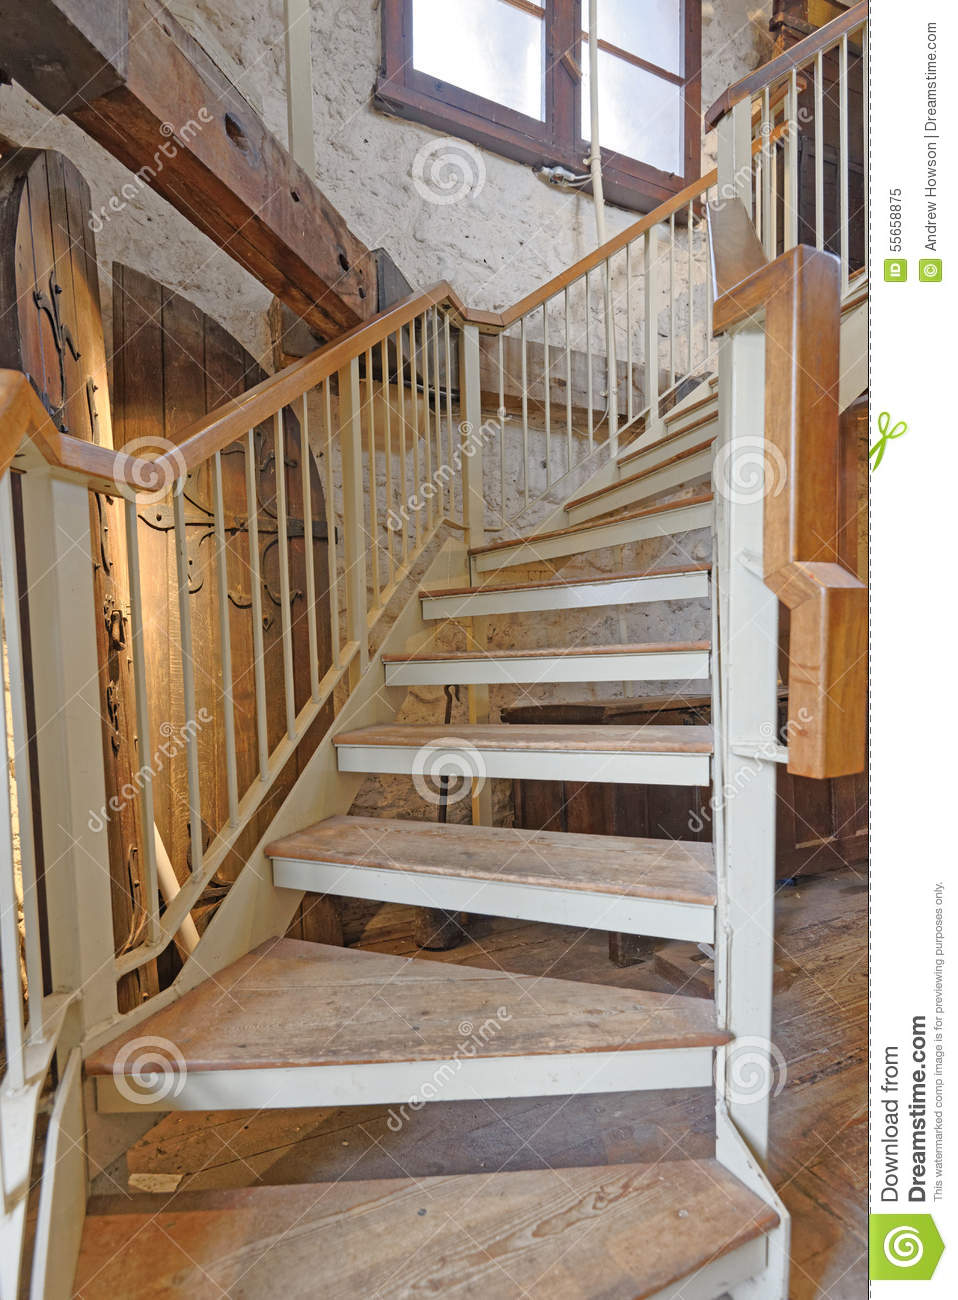 Interior Image Of Interior Stairs Taken In The Saxon Tower Of St Michaelu0027s,  Oxford, England. The North Gate Is The Oldest Surviving Building In Oxford  At ...